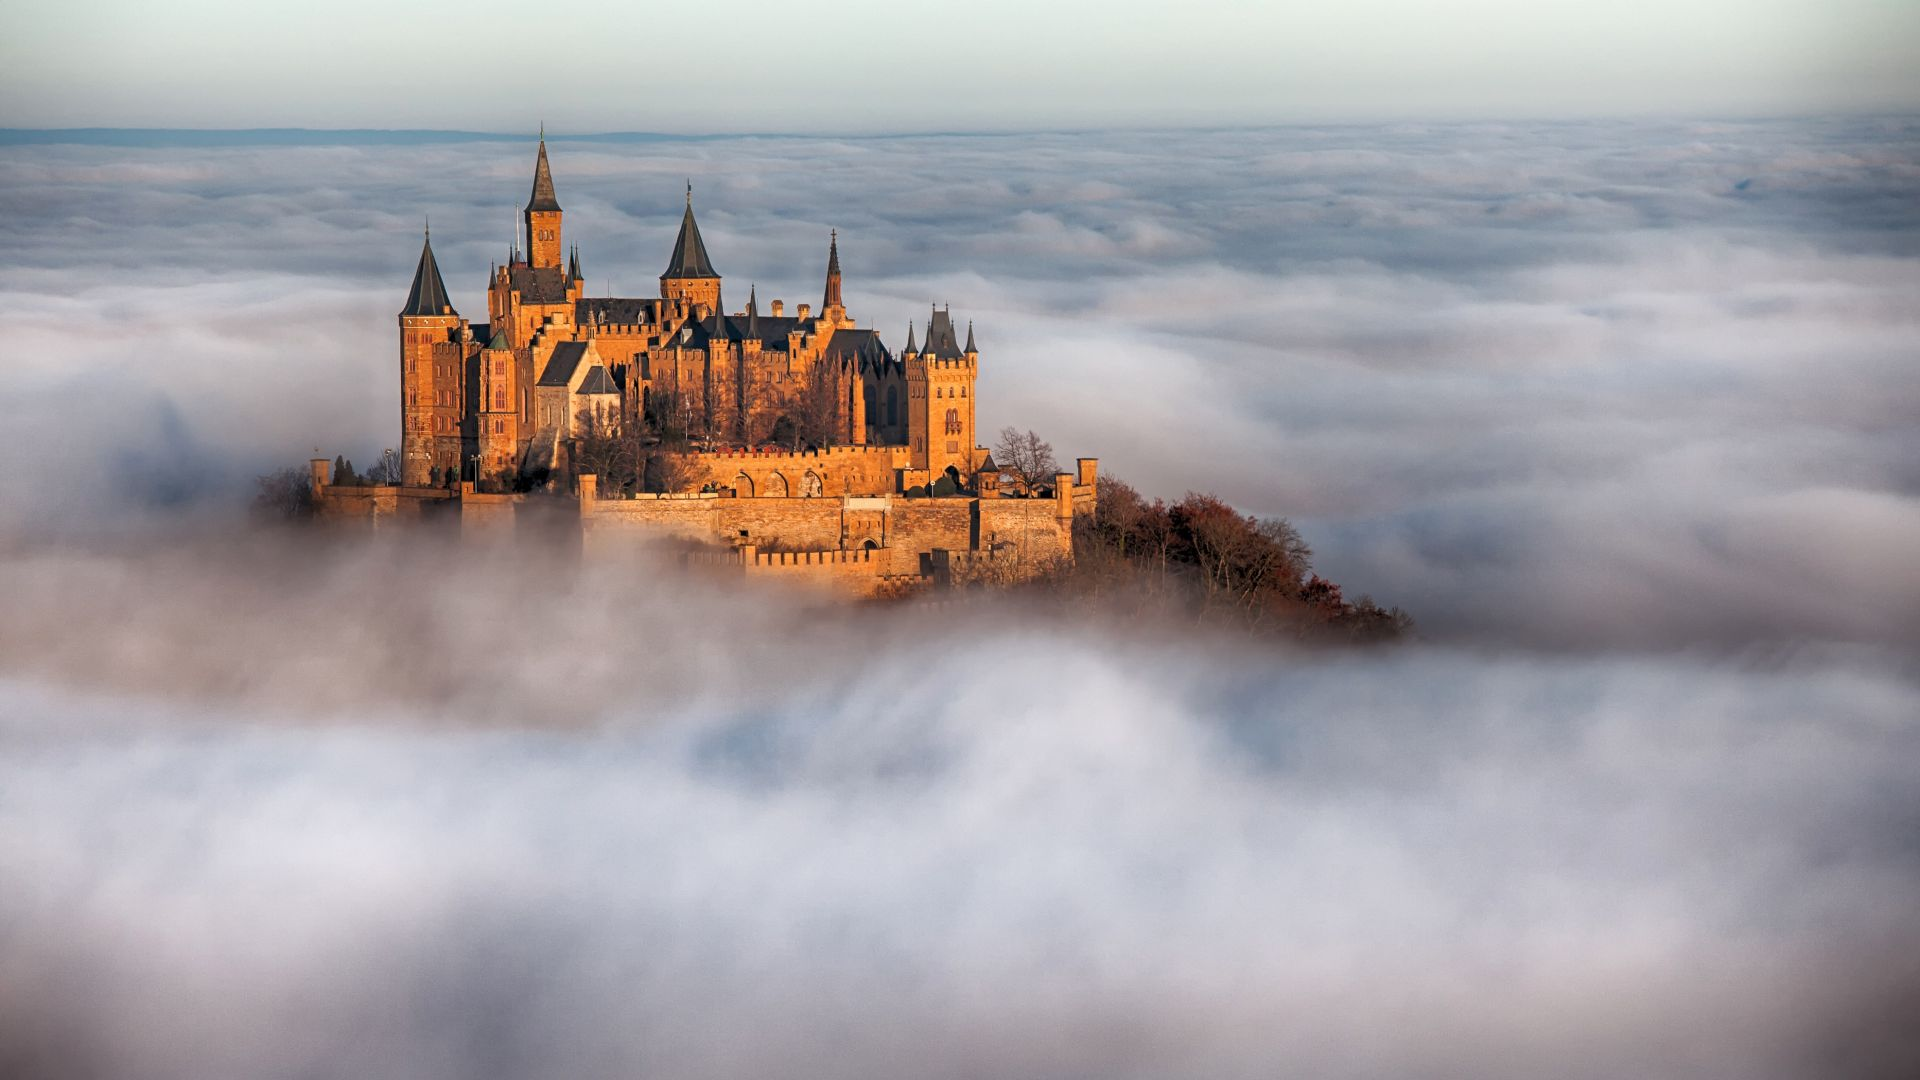 Замок Гогенцоллерн, Hohenzollern Castle, Germany, Europe, fog, 4k (horizontal)